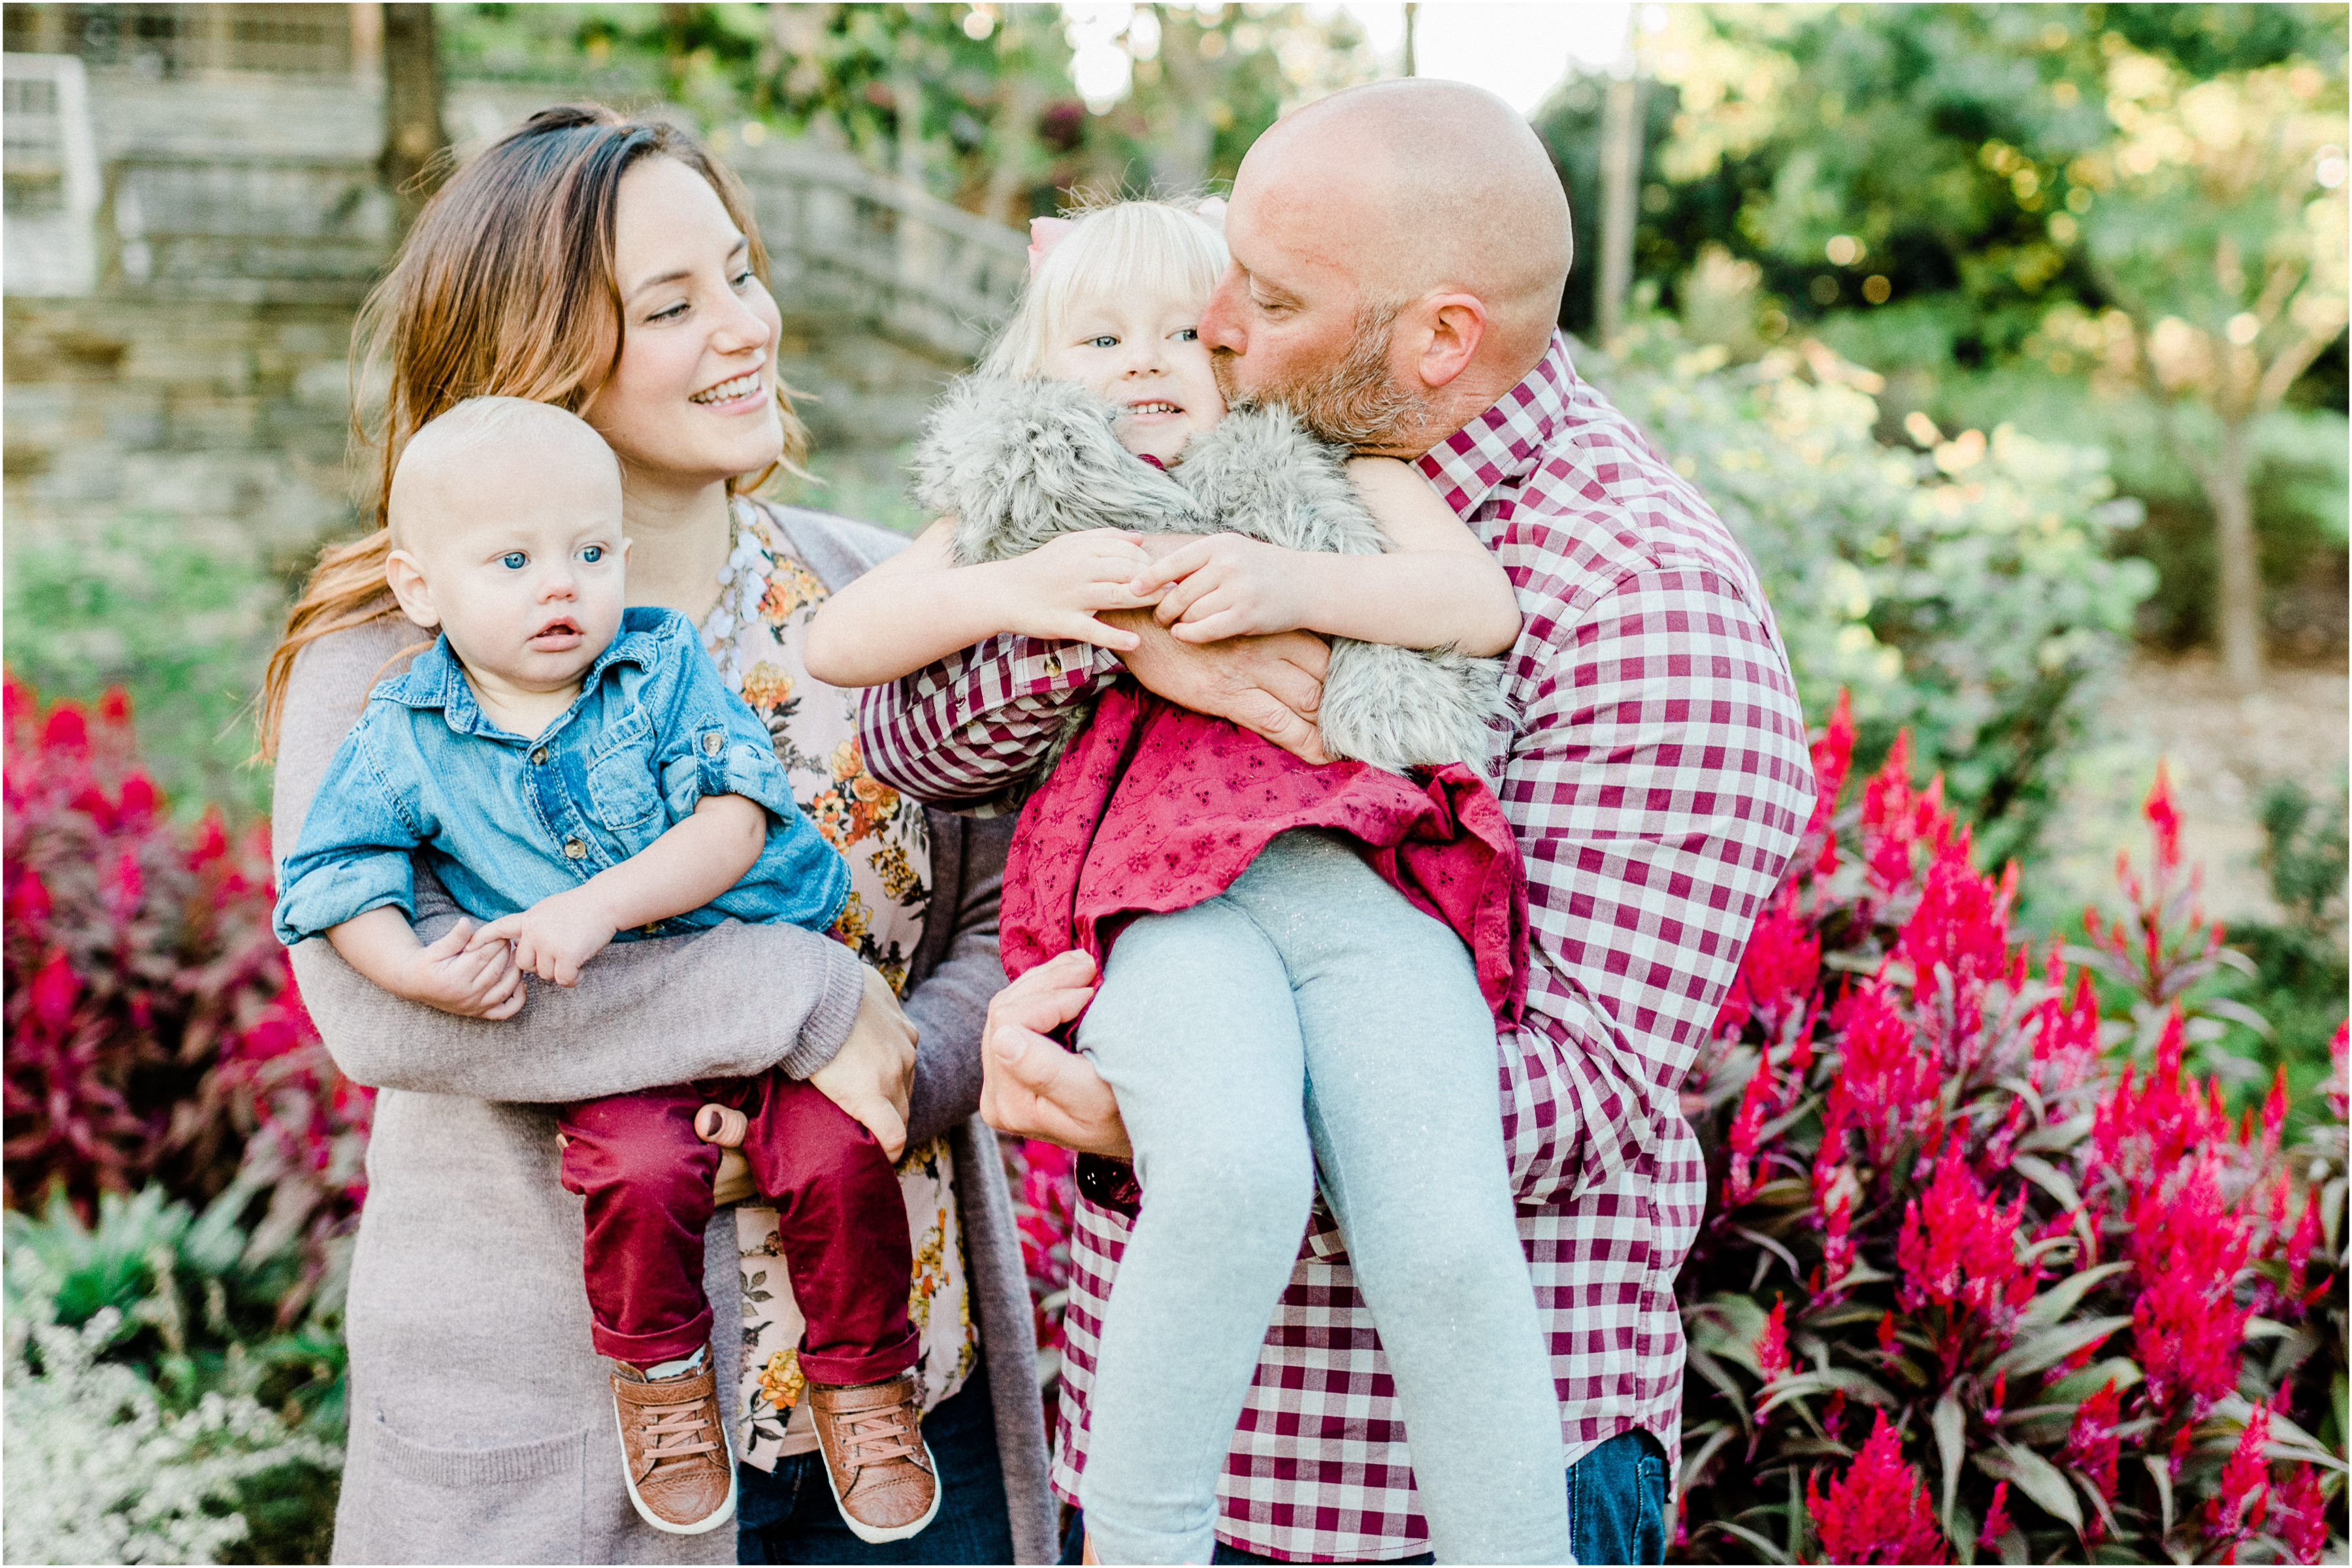 Fall Furman Family session in Greenville, SC